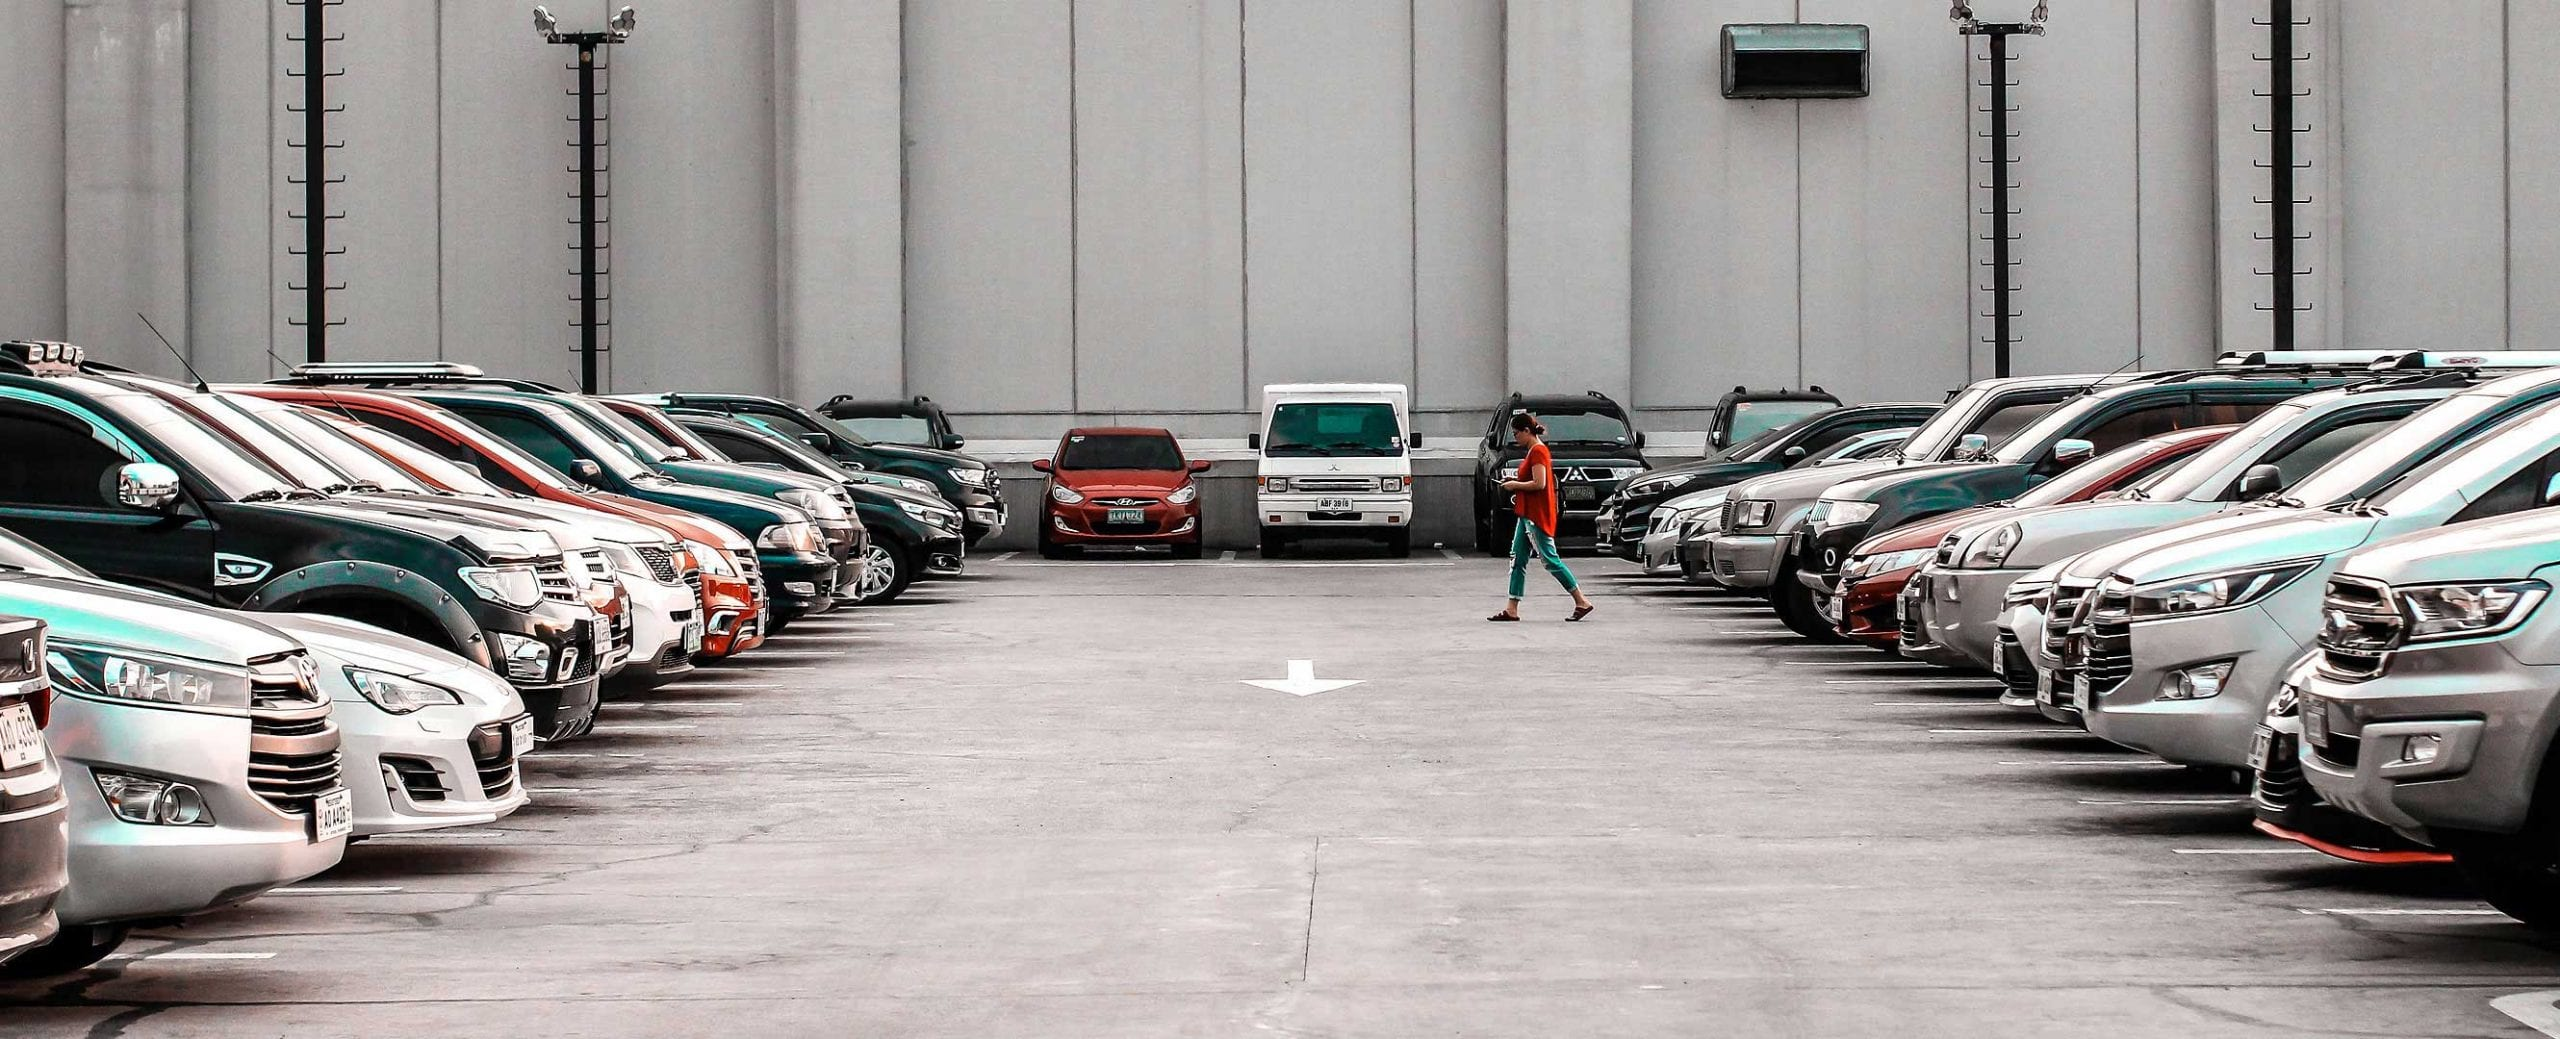 parking apps services